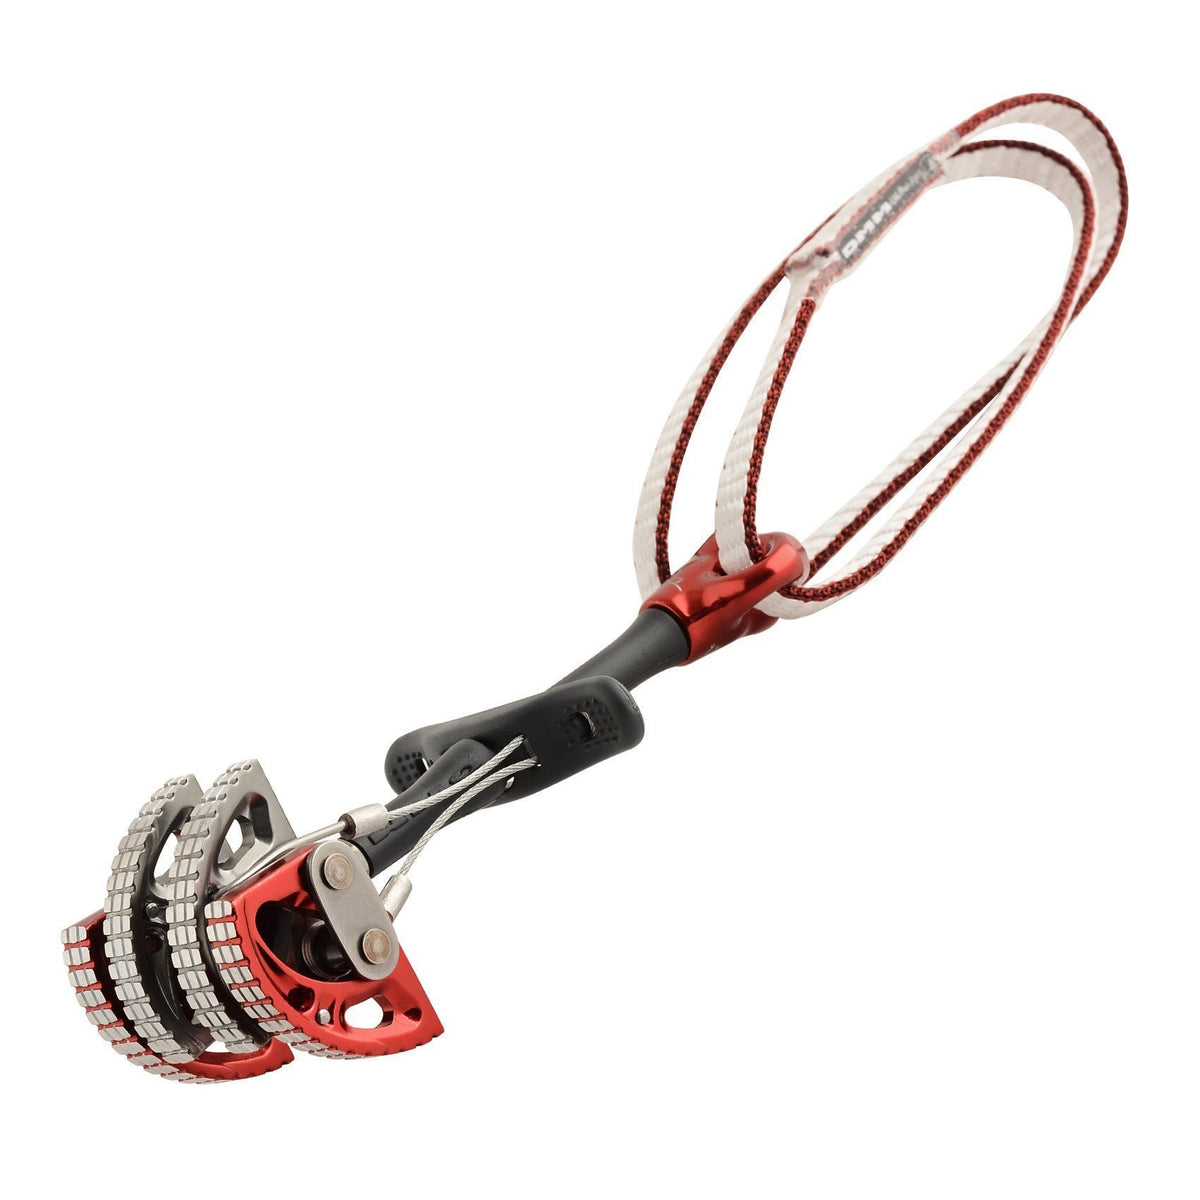 DMM Dragon Cam, Size 3 in red colour